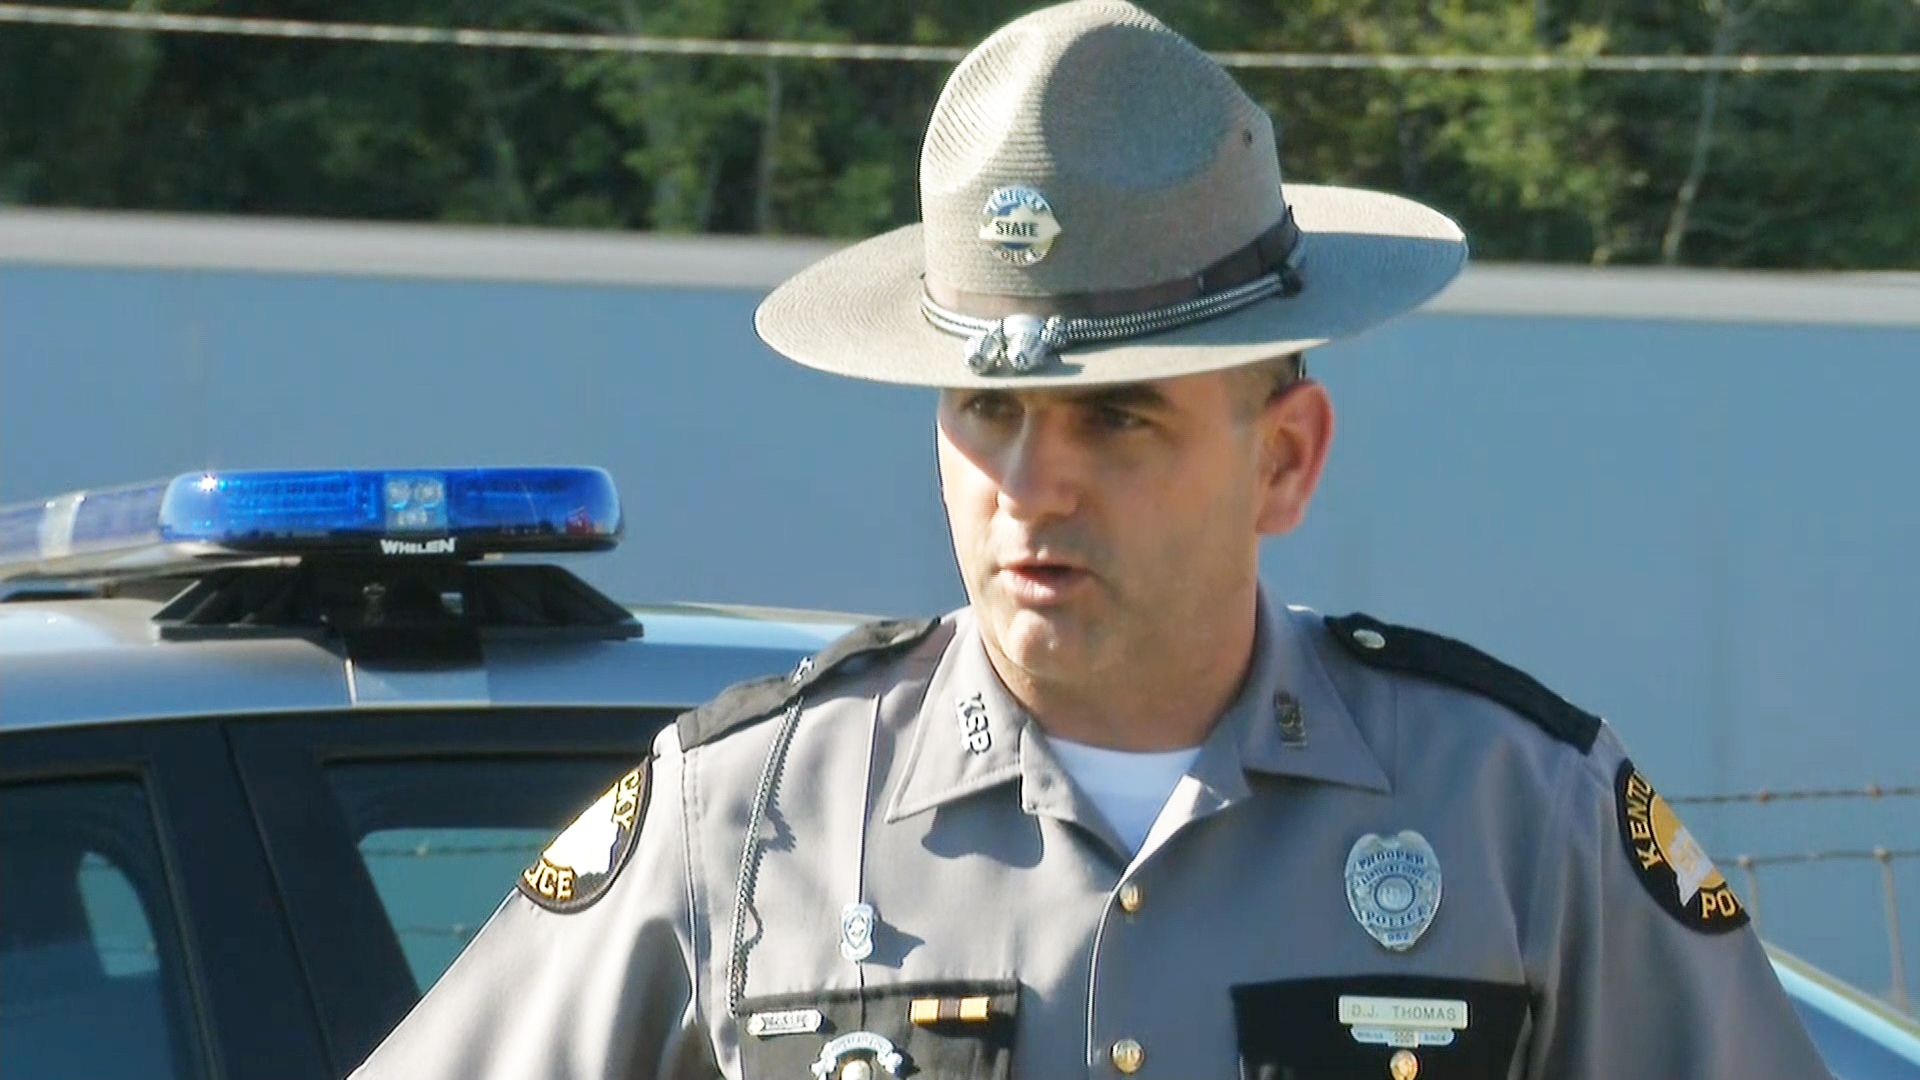 Man Suspected of Gunning Down Kentucky Trooper Joseph Cameron Ponder Shot, Killed